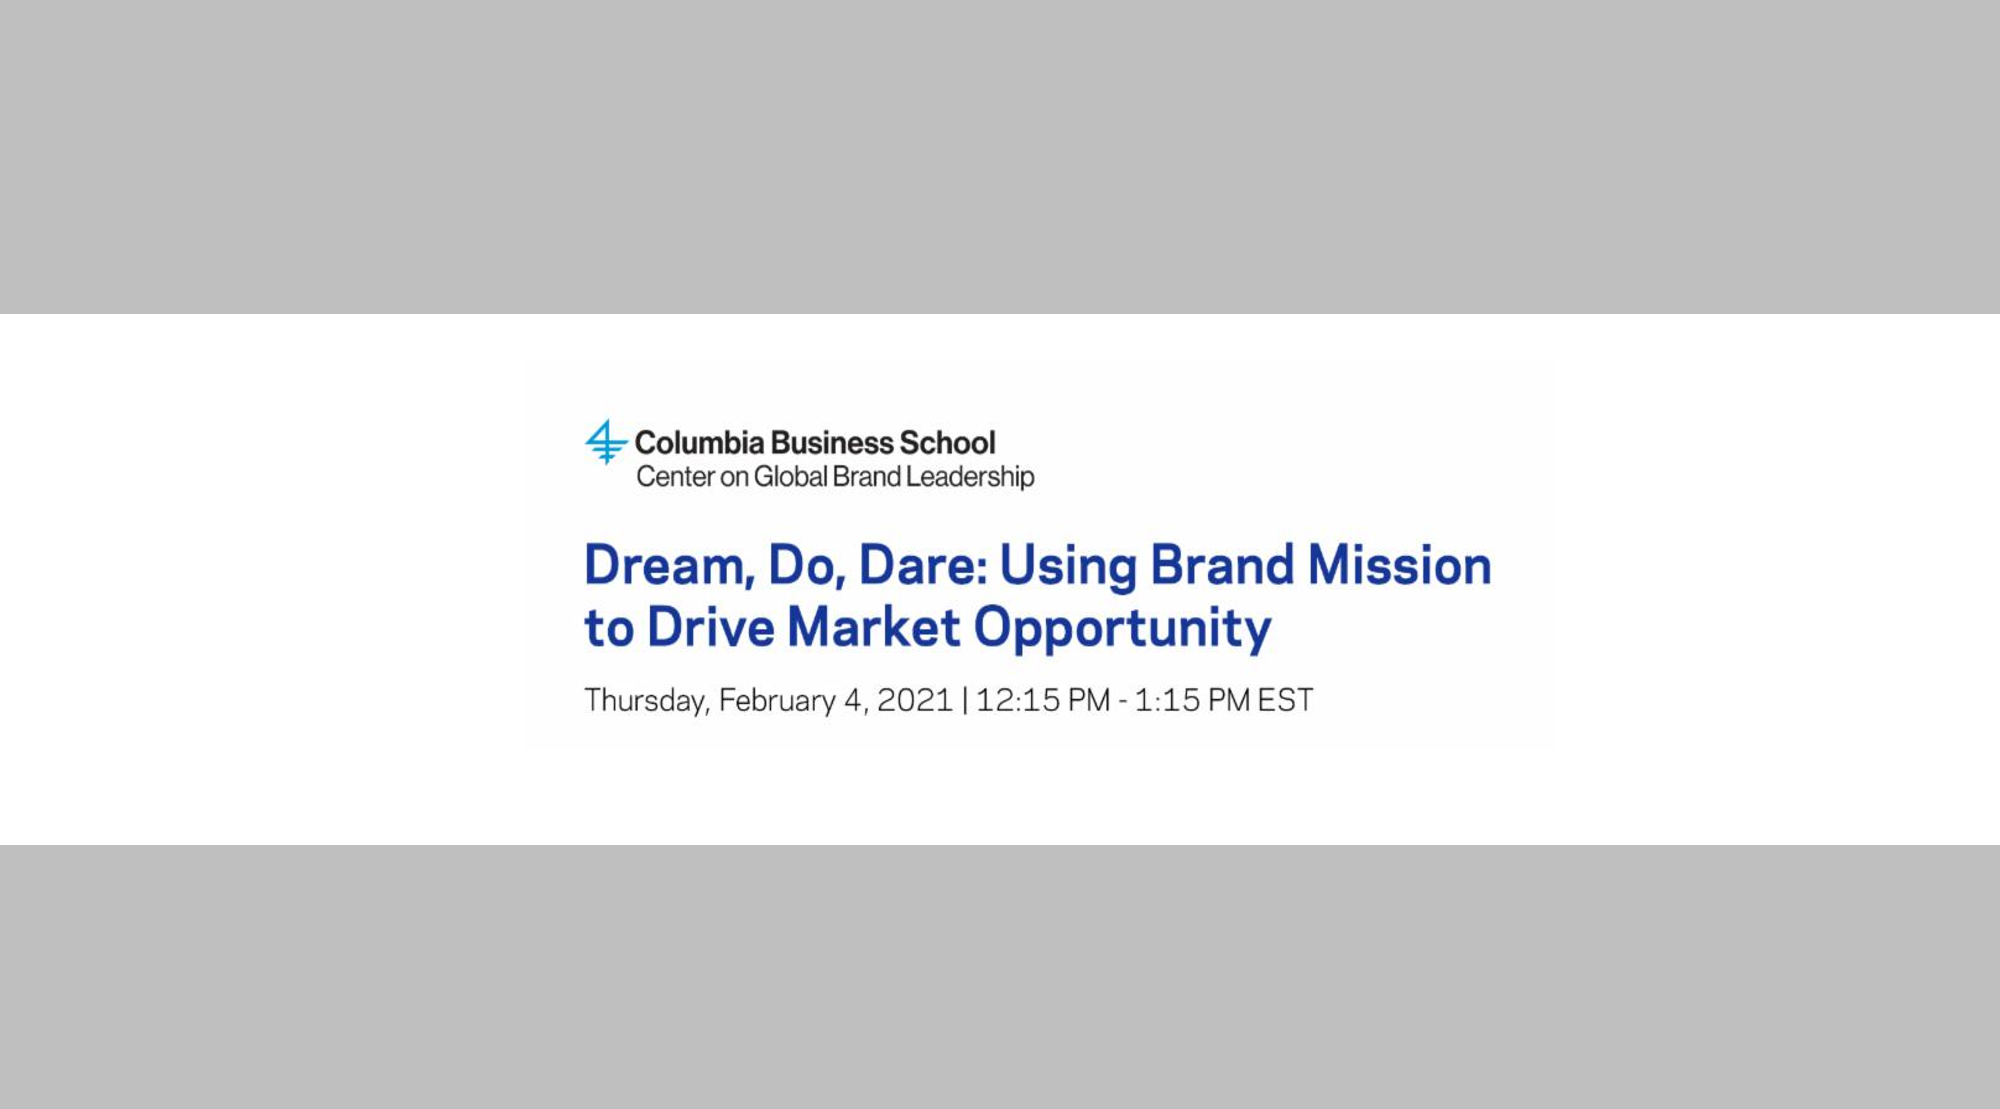 Dream, Do, Dare: Using Brand Mission to Drive Market Opportunity